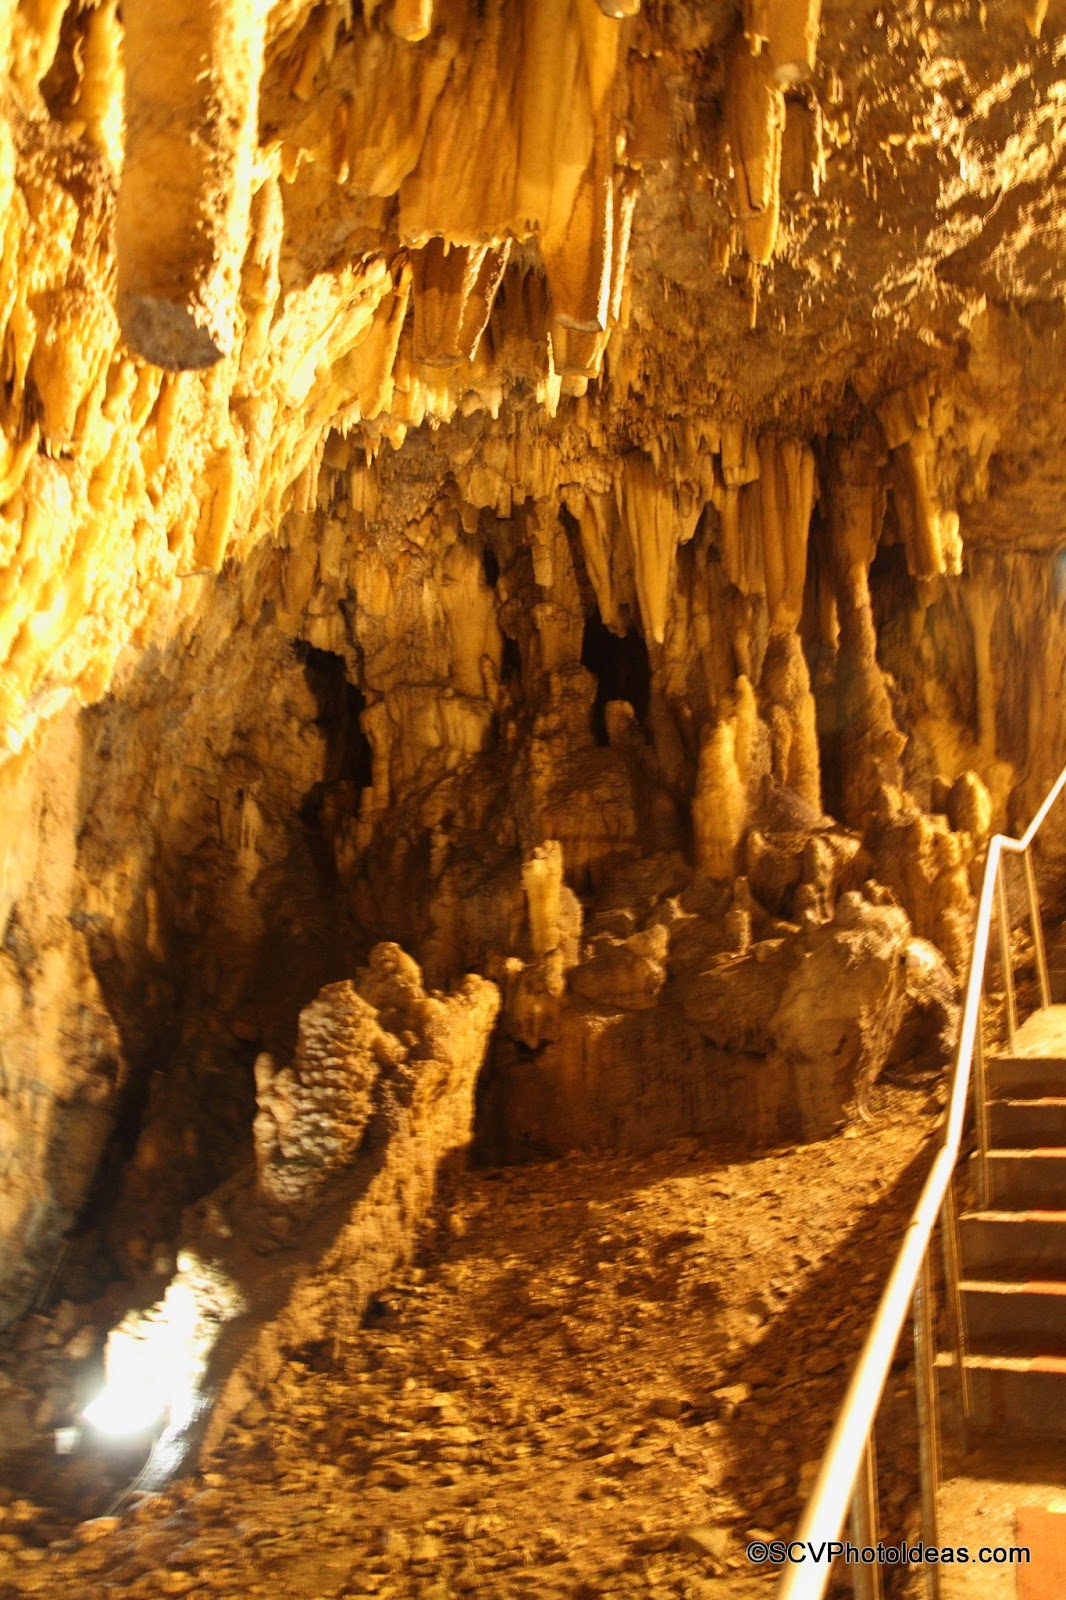 Drogarati Cave main chamber stalactite and stalagmite formations